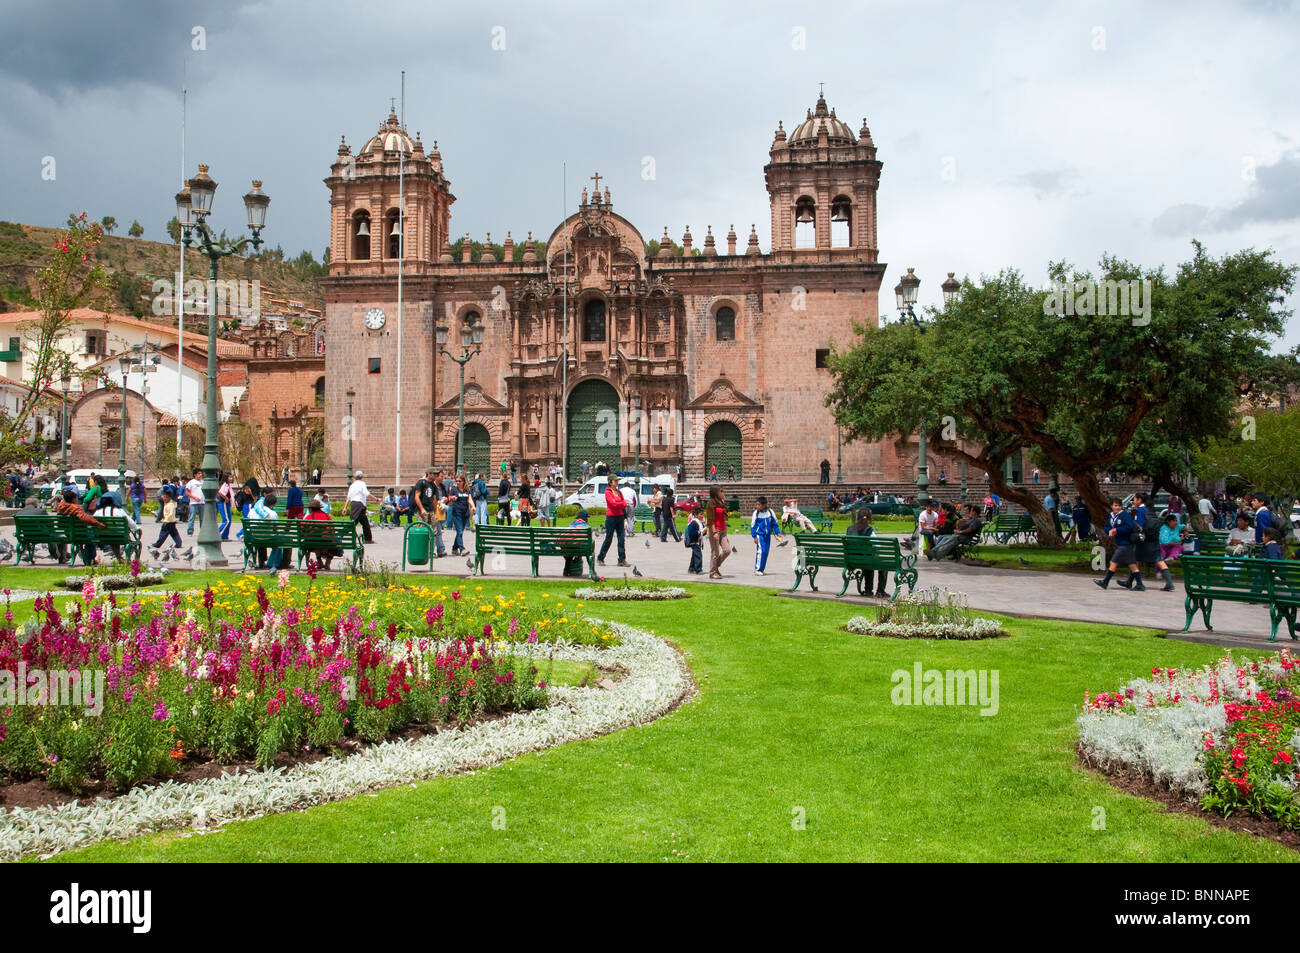 The cathedral on the Plaza de Armas in Cusco, Peru, South America. Stock Photo